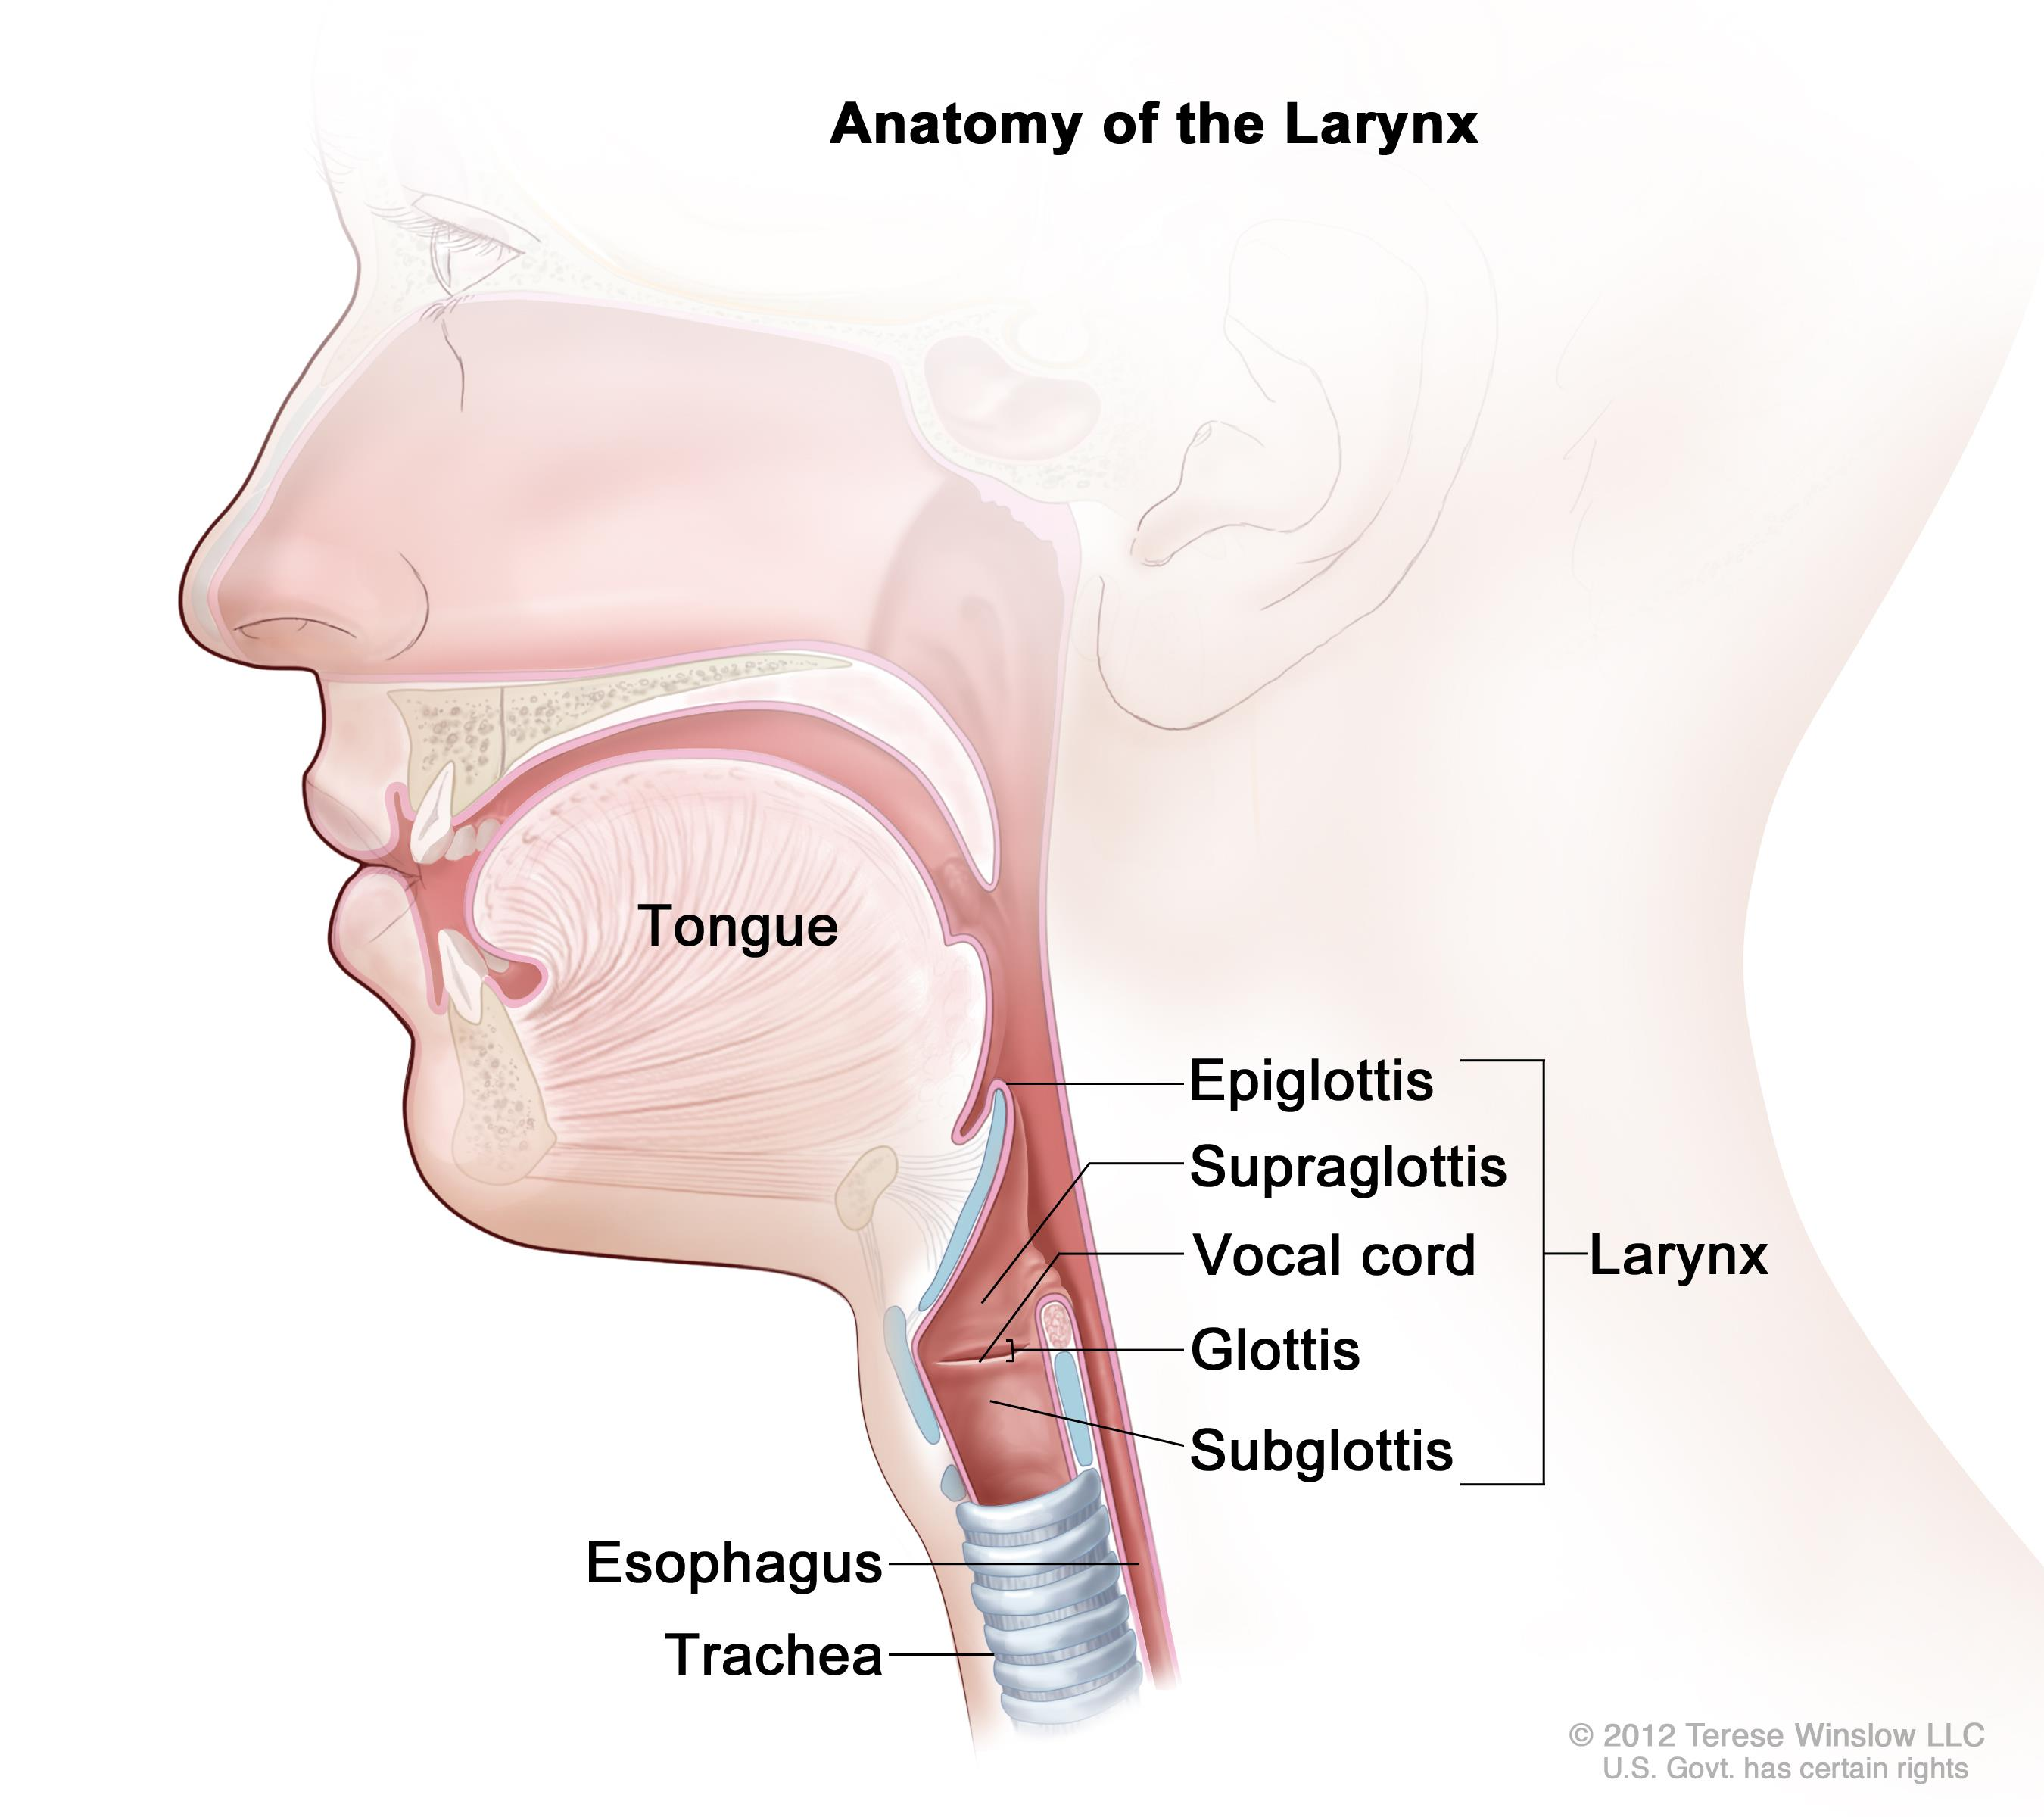 Anatomy of the larynx; drawing shows the epiglottis, supraglottis, glottis, subglottis, and vocal cords. Also shown are the tongue, trachea, and esophagus.